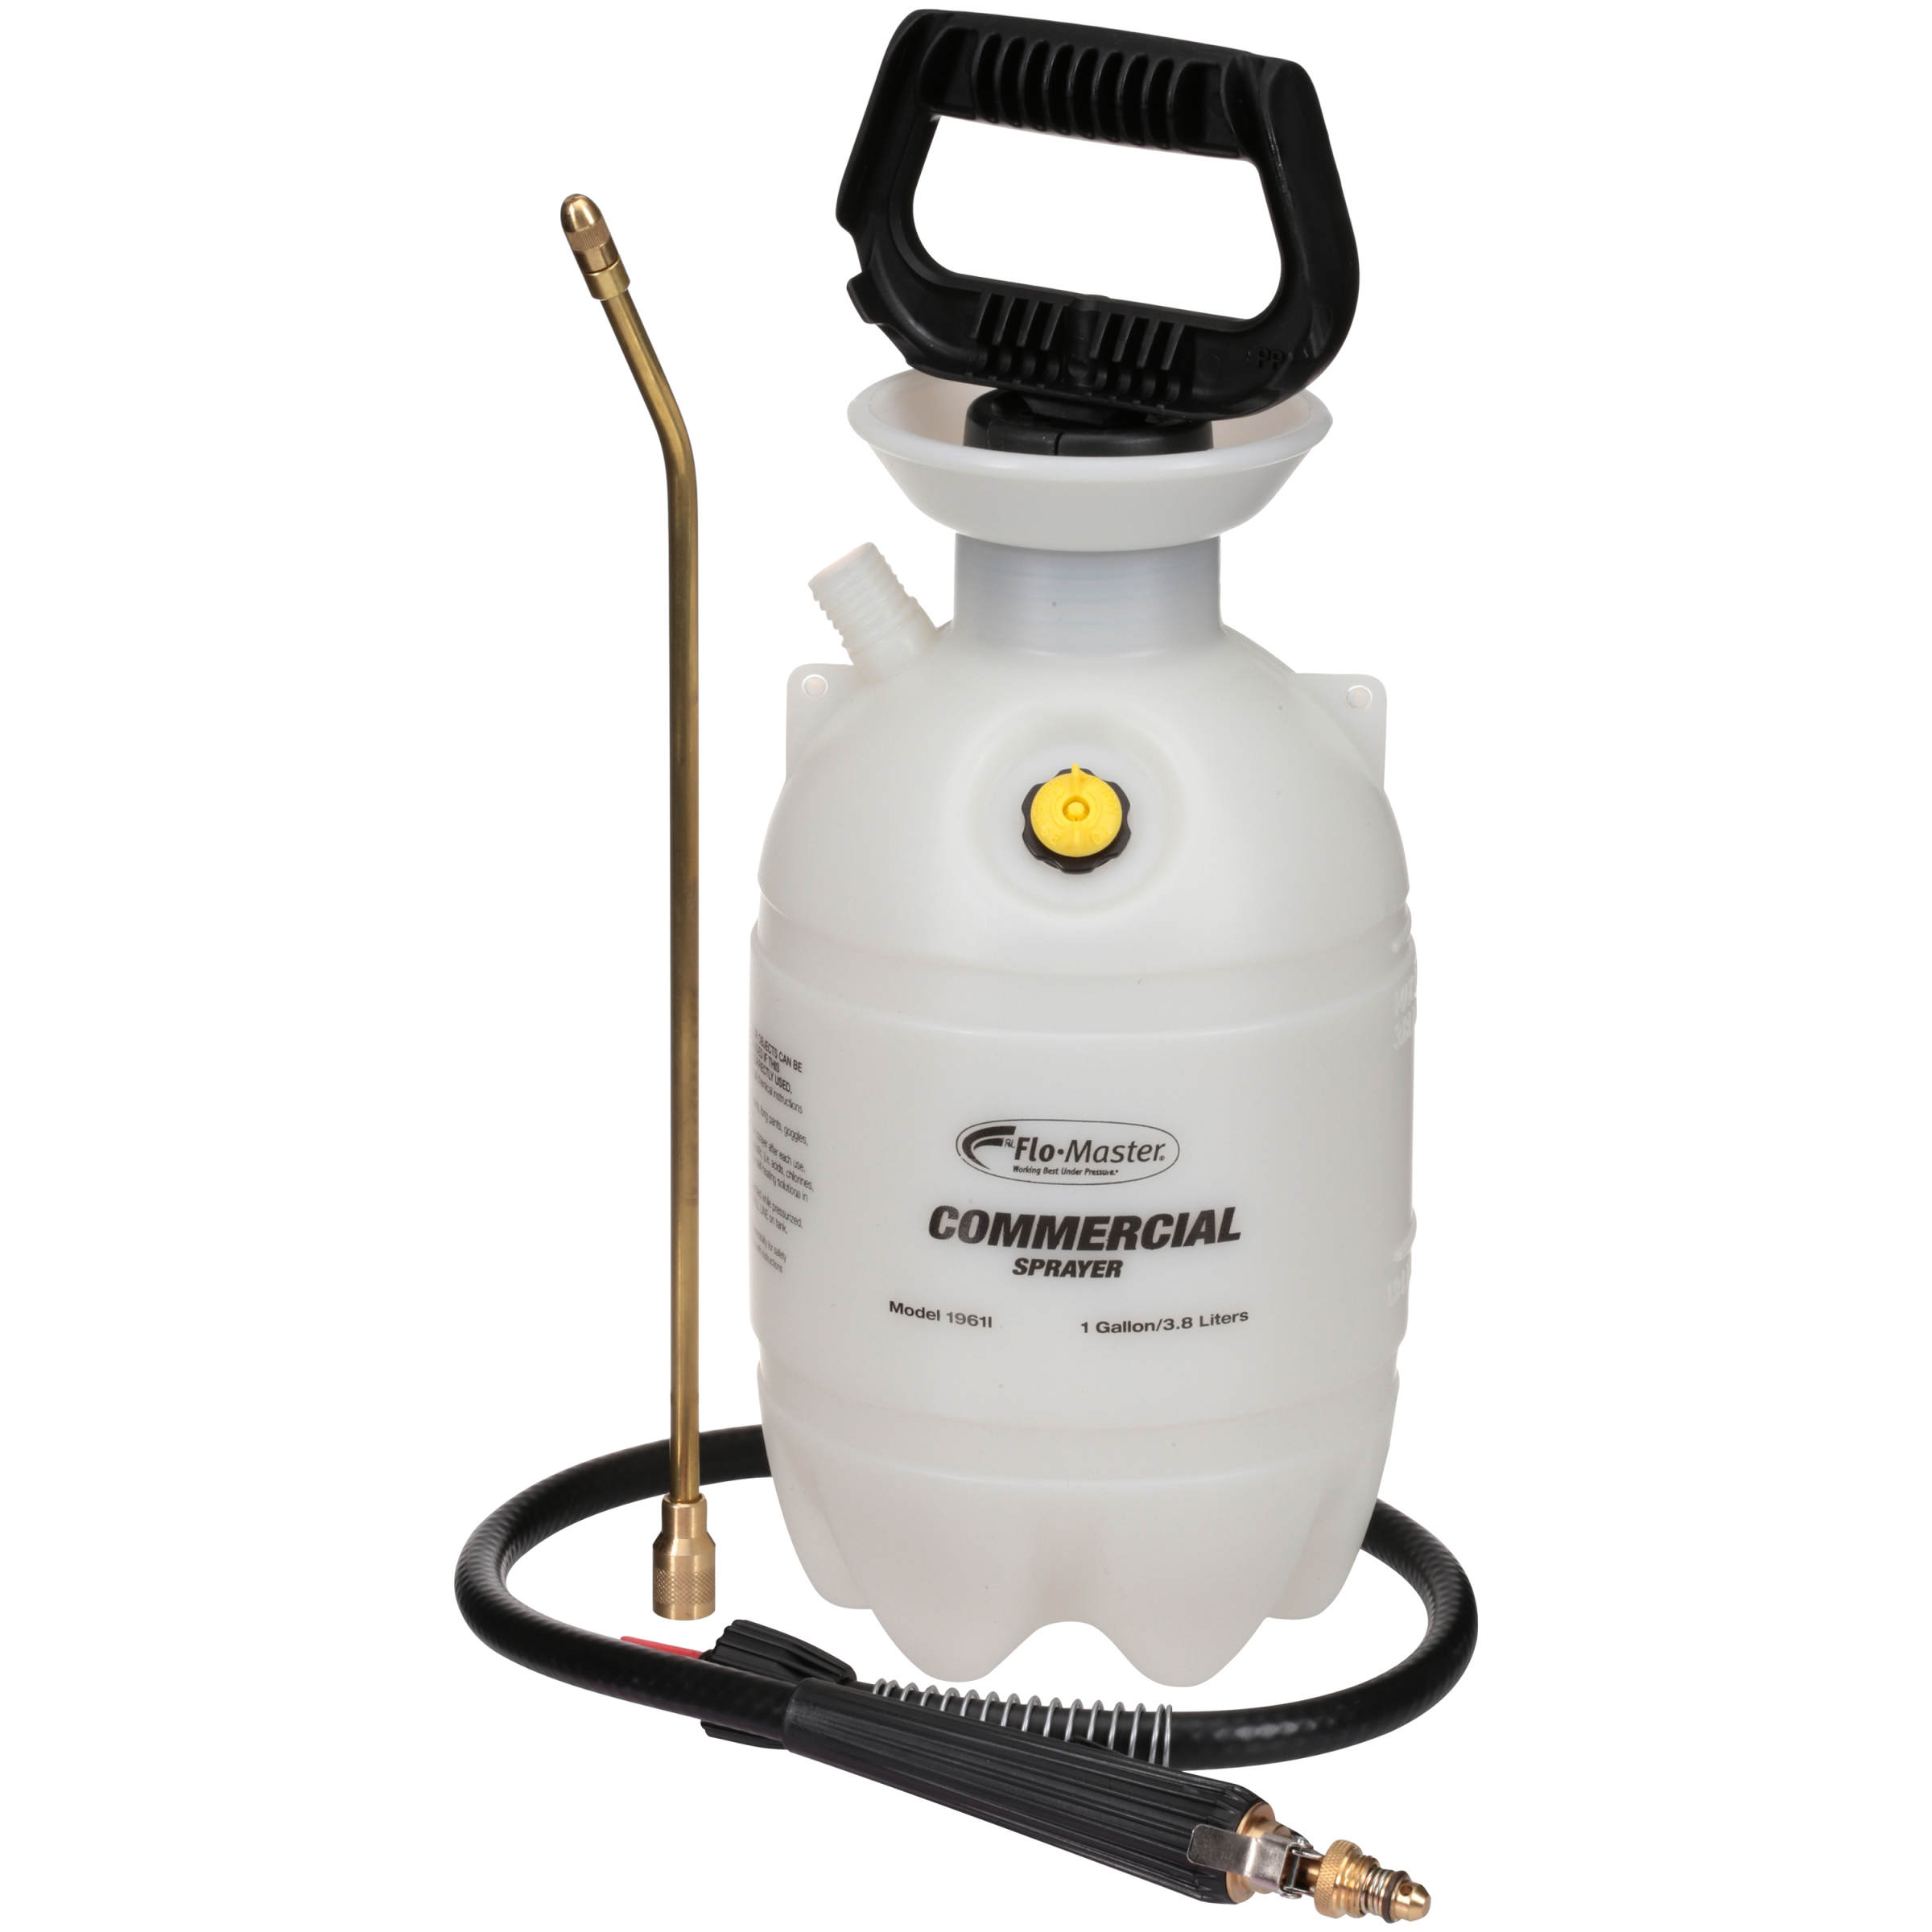 RL Flo-Master 1 Gallon Commercial Sprayer by Root-Lowell Manufacturing Co.